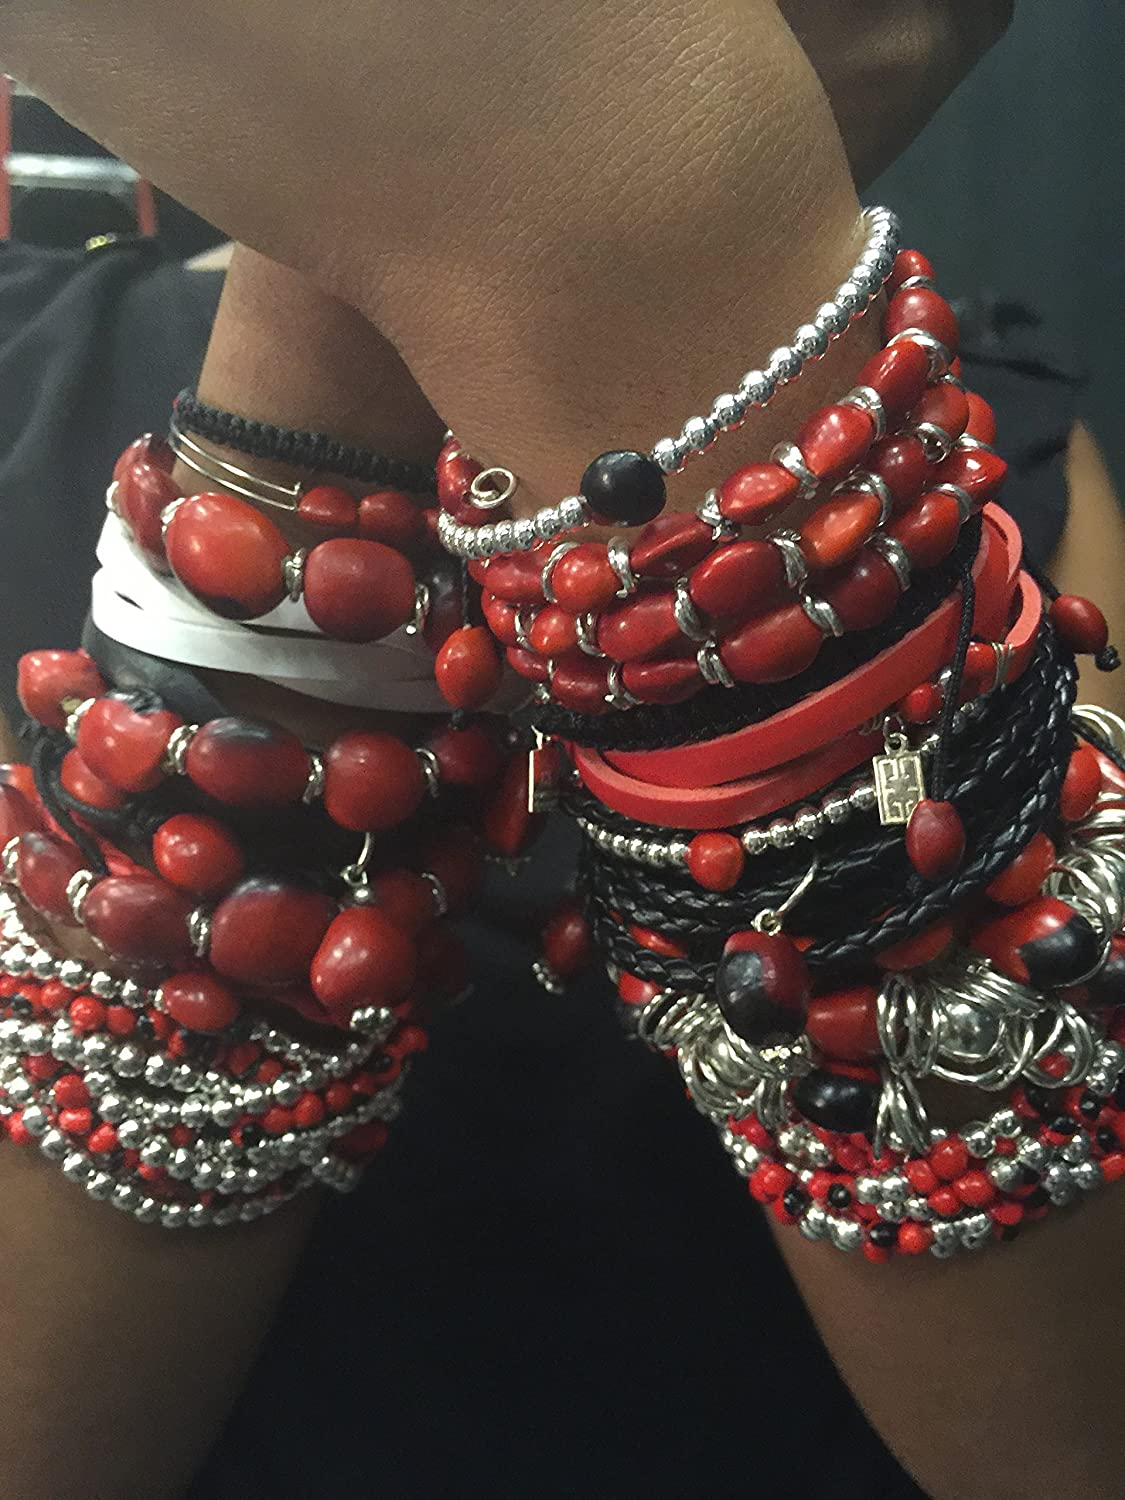 Handmade Jewelry by Evelyn Brooks Huayruro Red Seeds Flower Charm Peruvian Gift Bracelet for Women